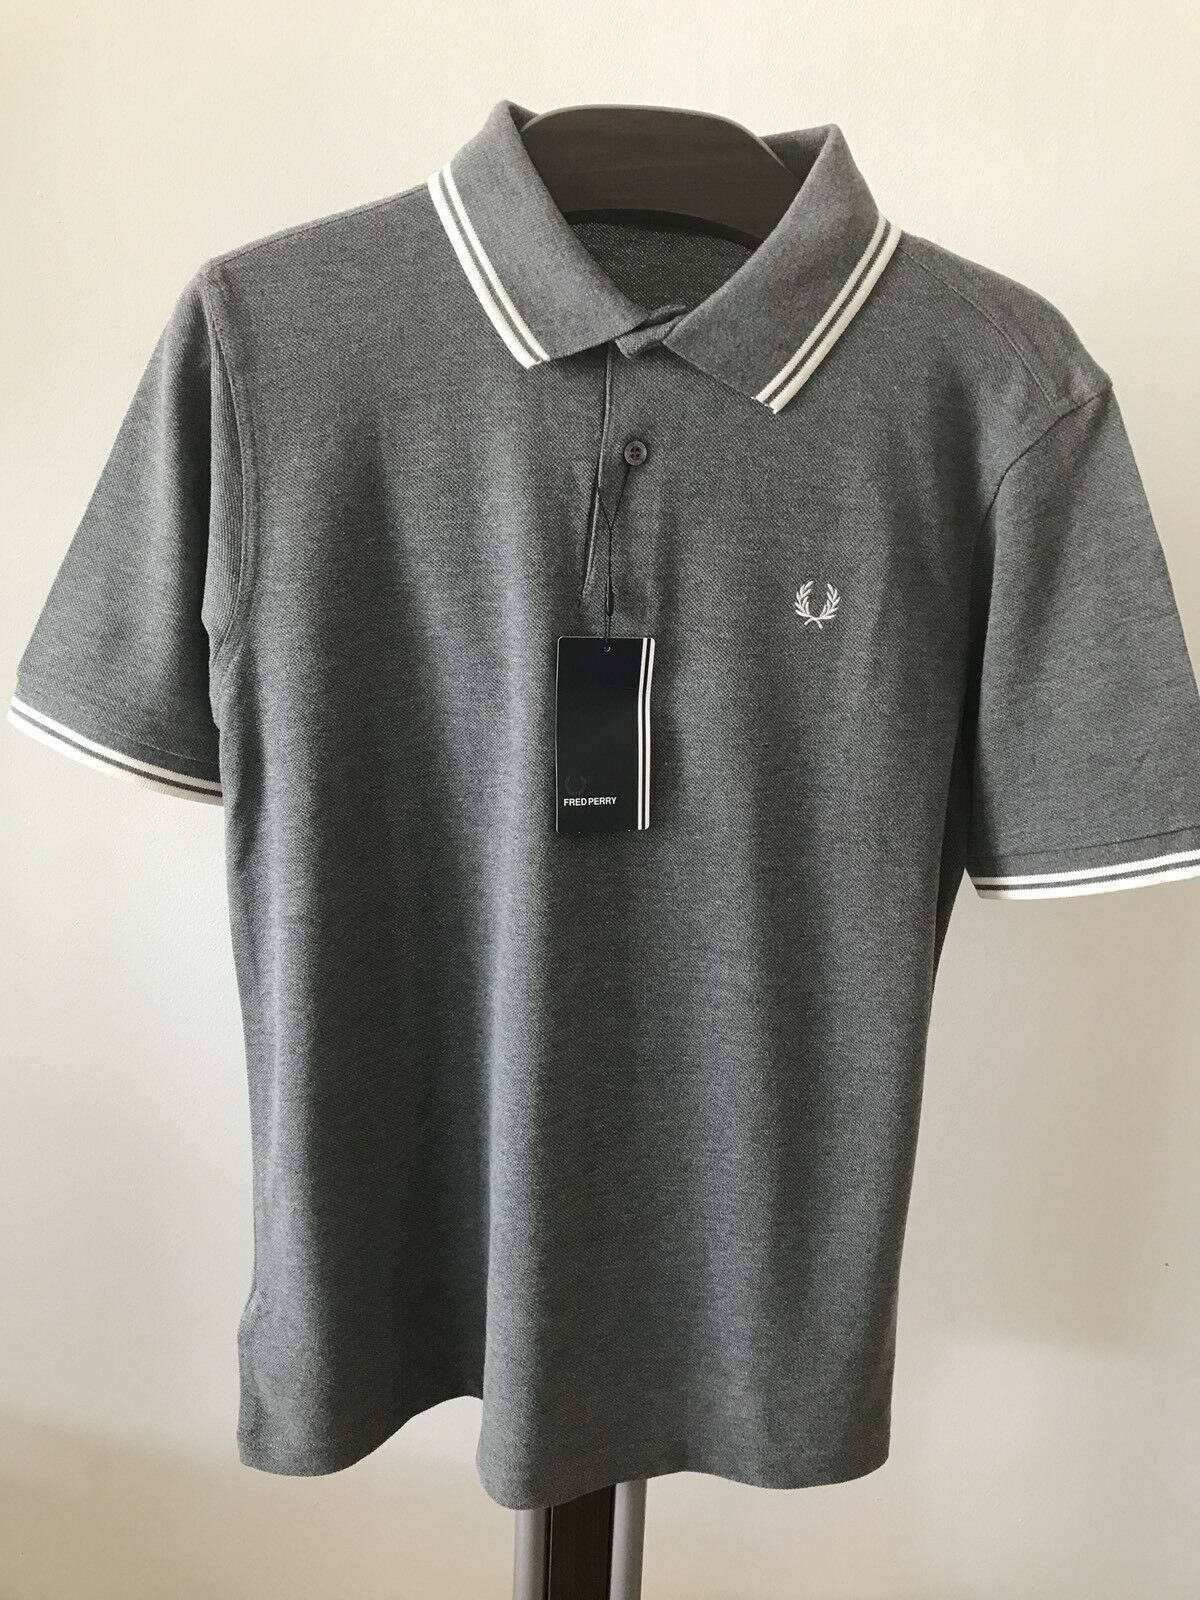 BNWT  Men's  Authentic Fred Perry  M1200 557 Polo Shirt. Classic Fit. Medium